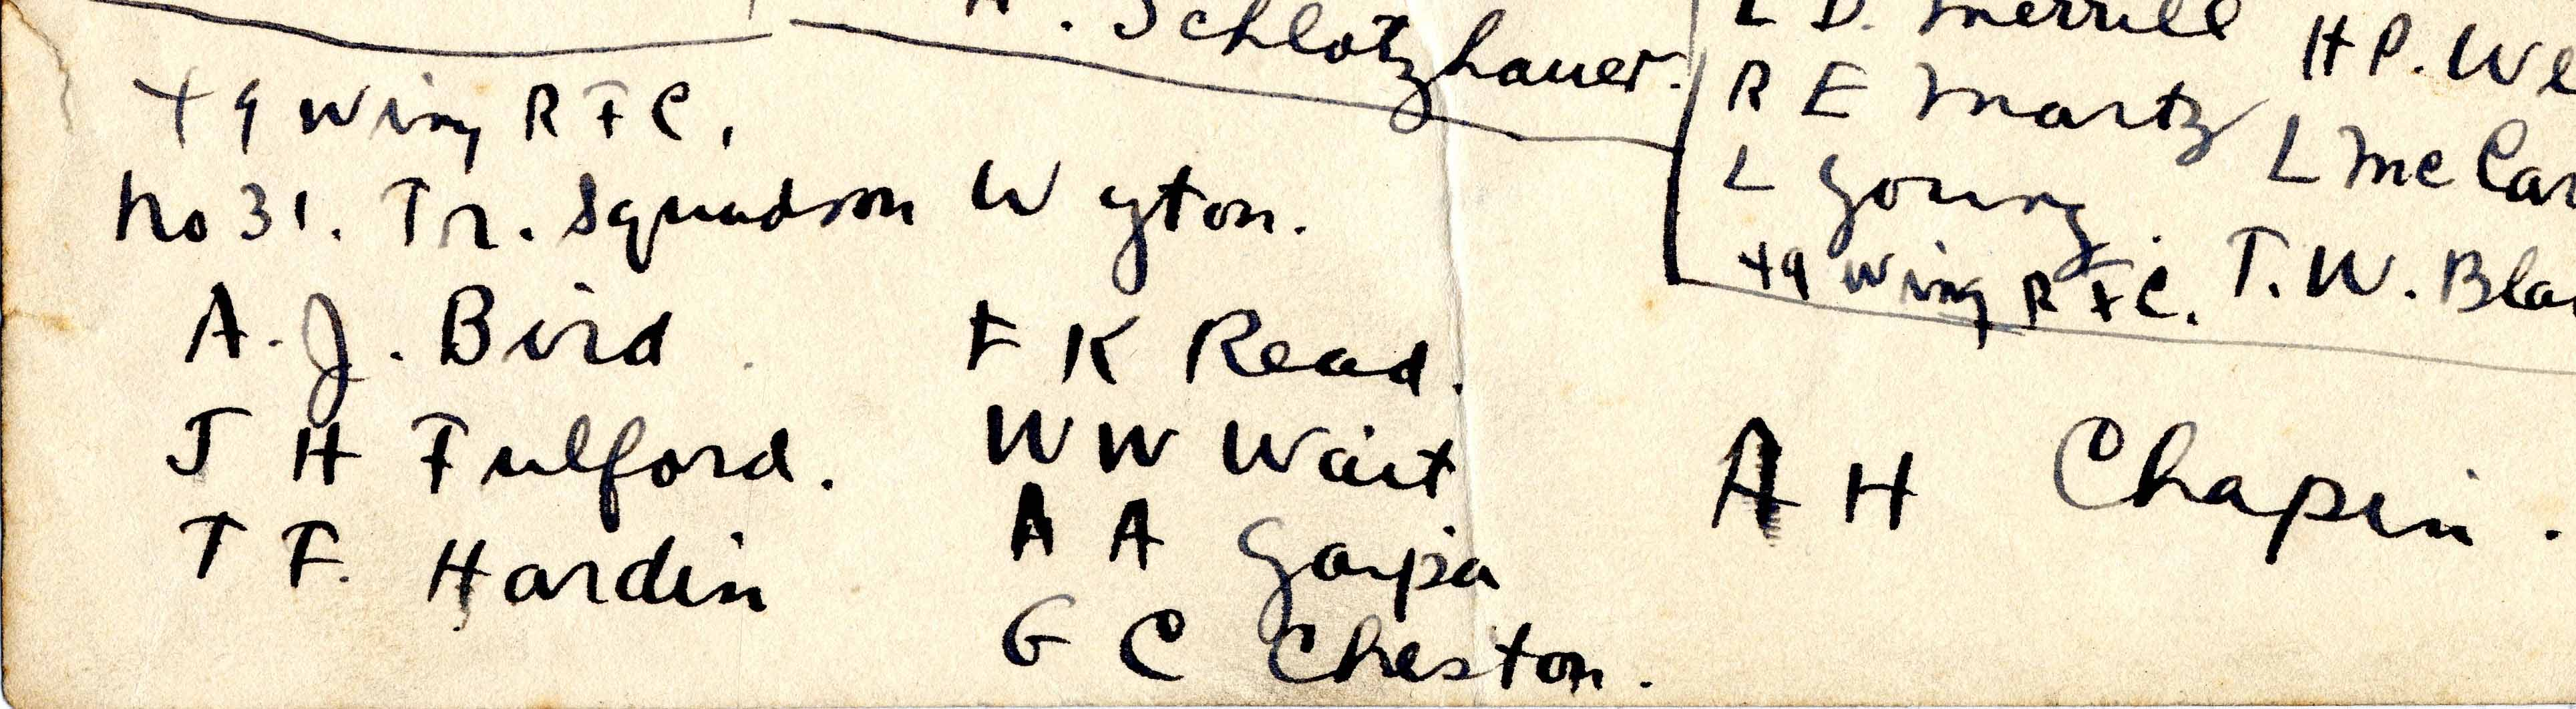 "Bottom portion of a page; handwritten in ink is the heading ""49 Wing R.F.C. No. 31 Tr. Squadron Wyton."" under the heading are the names: A. J. [sic] Bird, J. H. Fulford, T. F. Hardin, F. K. Read, W. W. Wait, A. A. Gaipa, G. C. Cheston, A. H. Chapin."